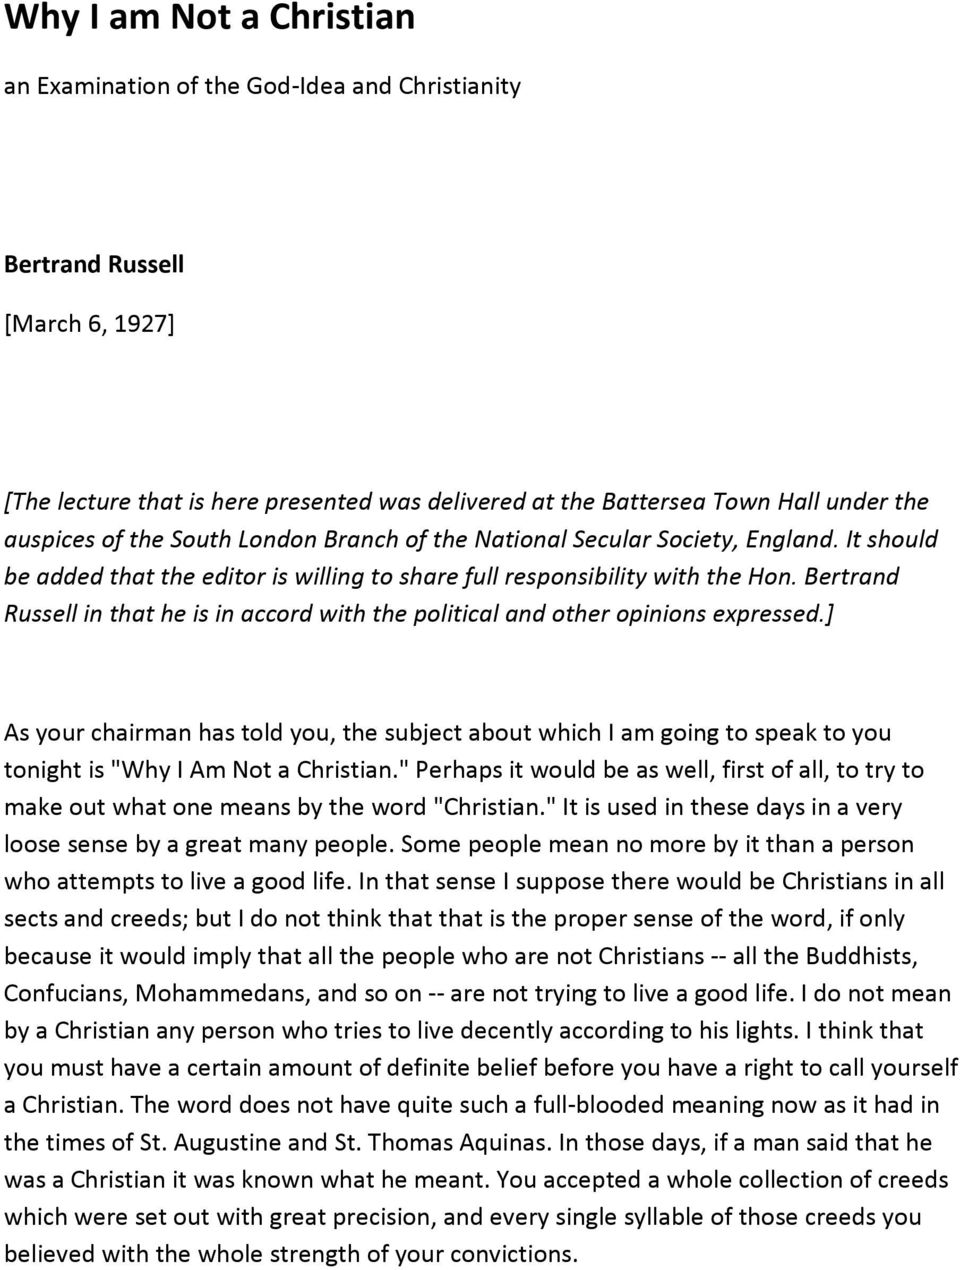 Bertrand Russell in that he is in accord with the political and other opinions expressed.